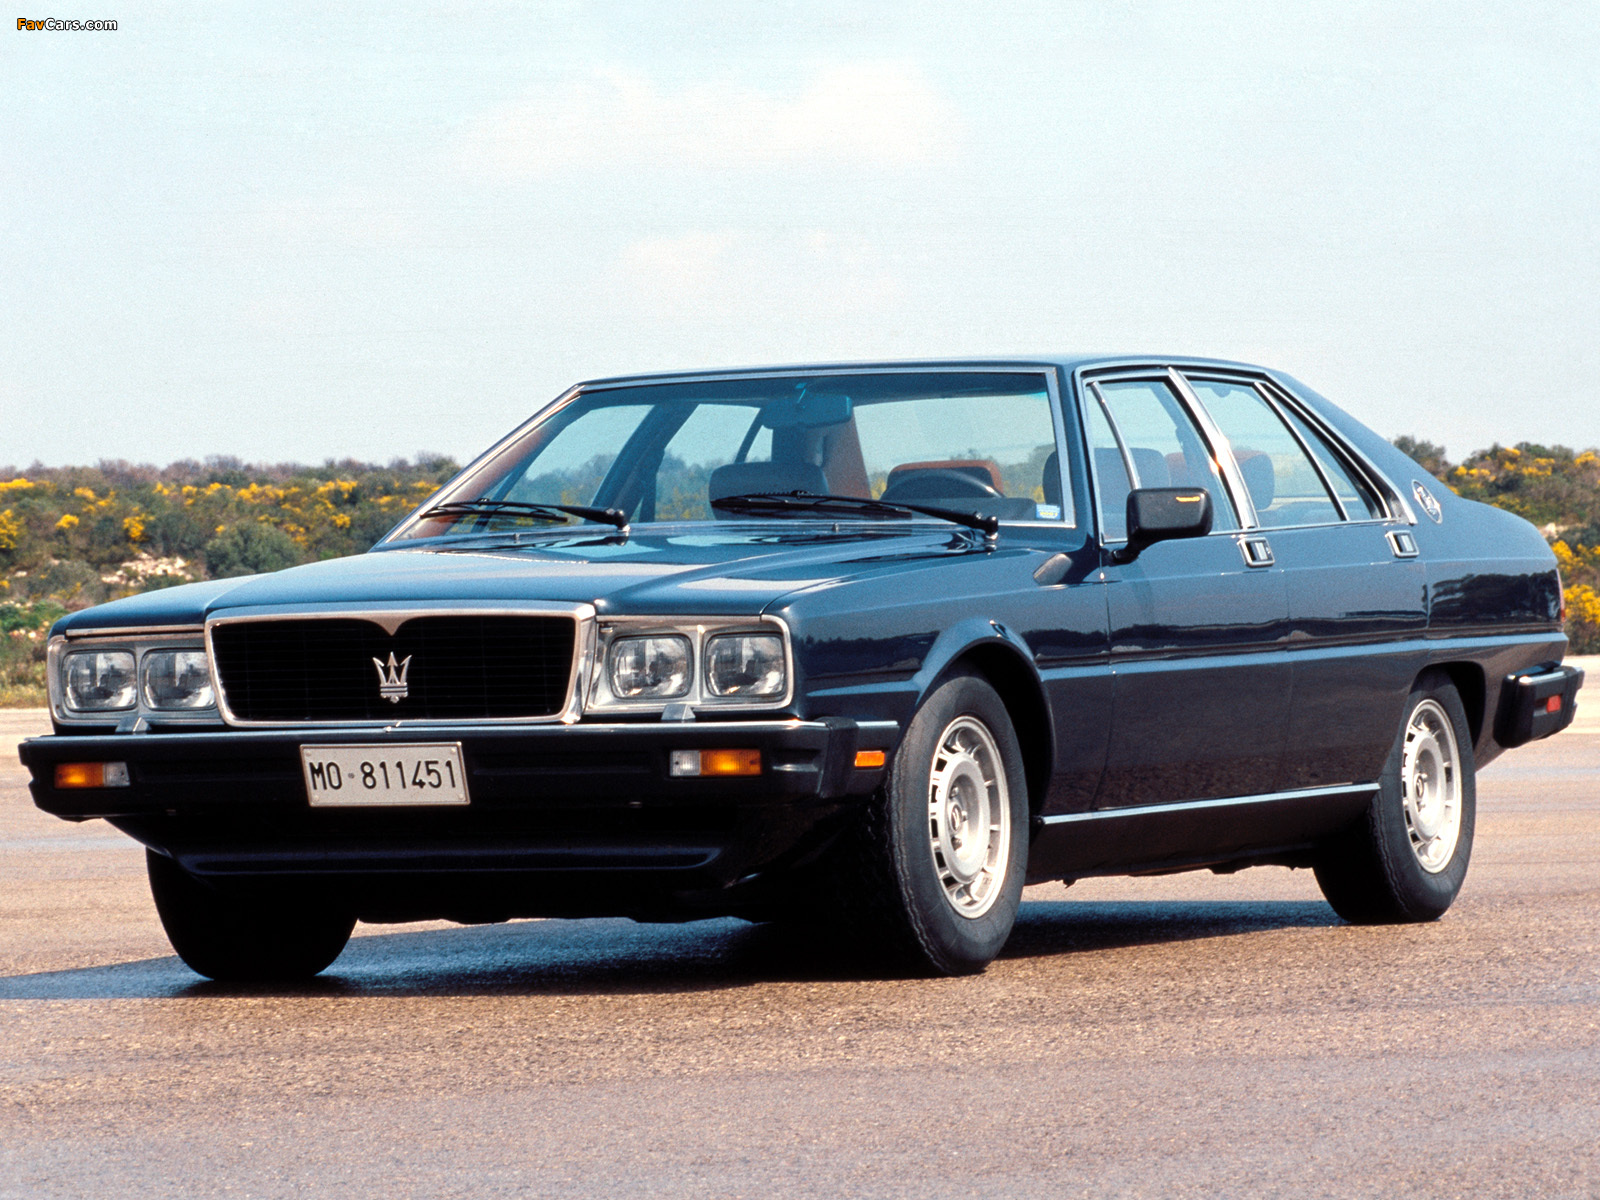 1995 Maserati Quattroporte iii - pictures, information and ...